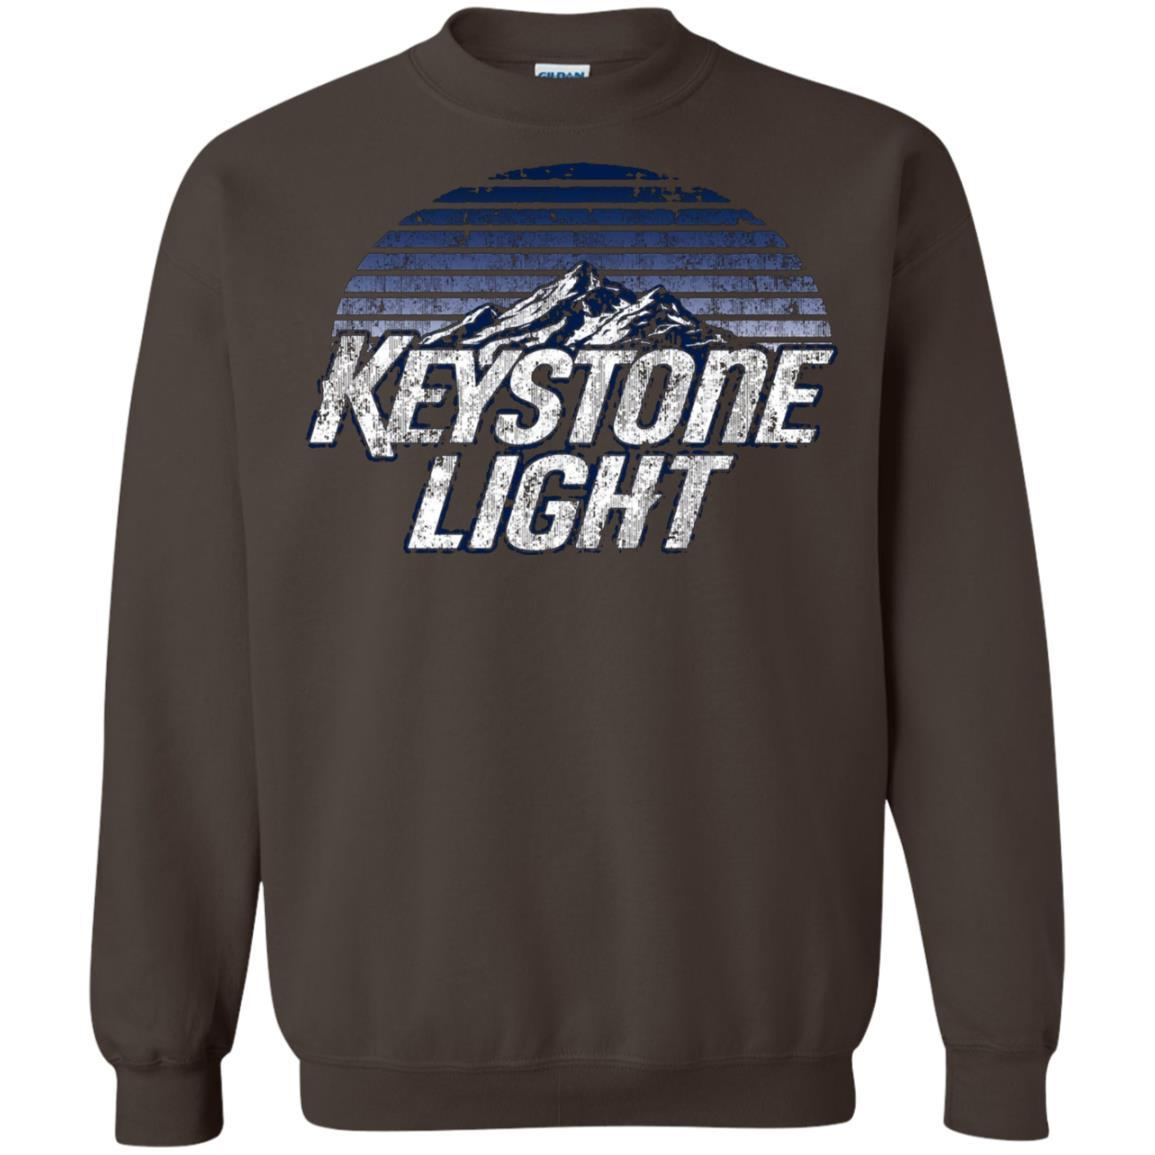 Keystone Light Beer Classic Look - Pullover Sweatshirt Dark Chocolate / 5XL